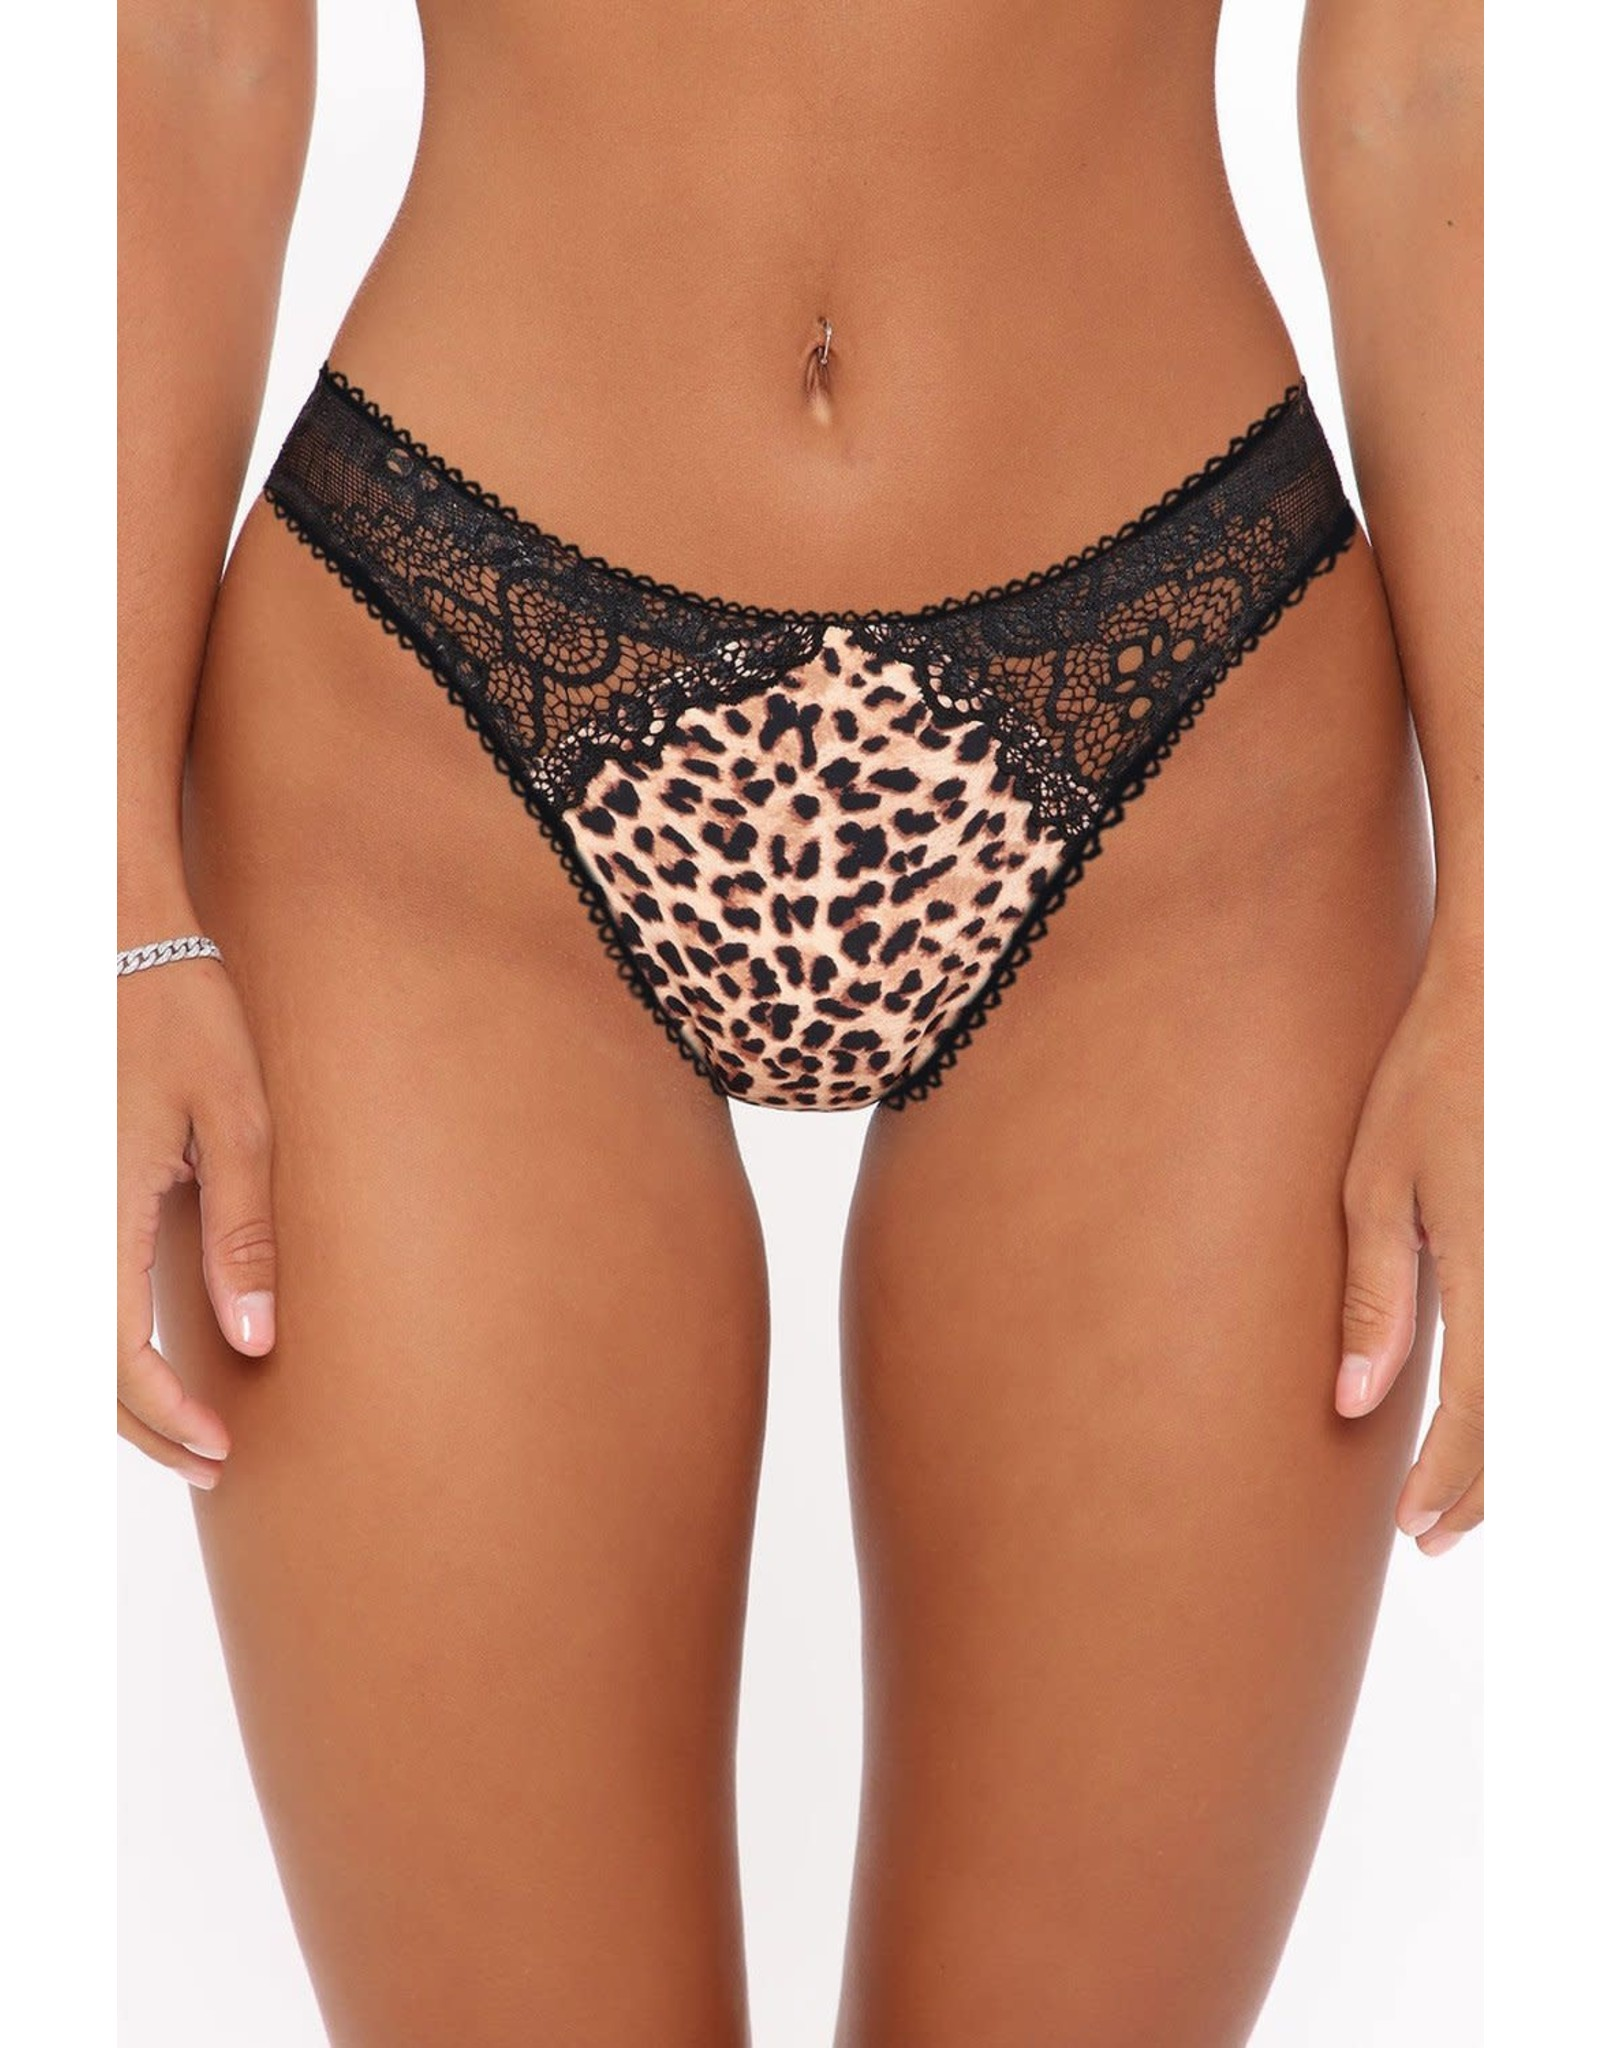 ANIMAL LEOPARD LACE PATCHWORK HOLLOW OUT WILD PANTY - (US 8-10)M